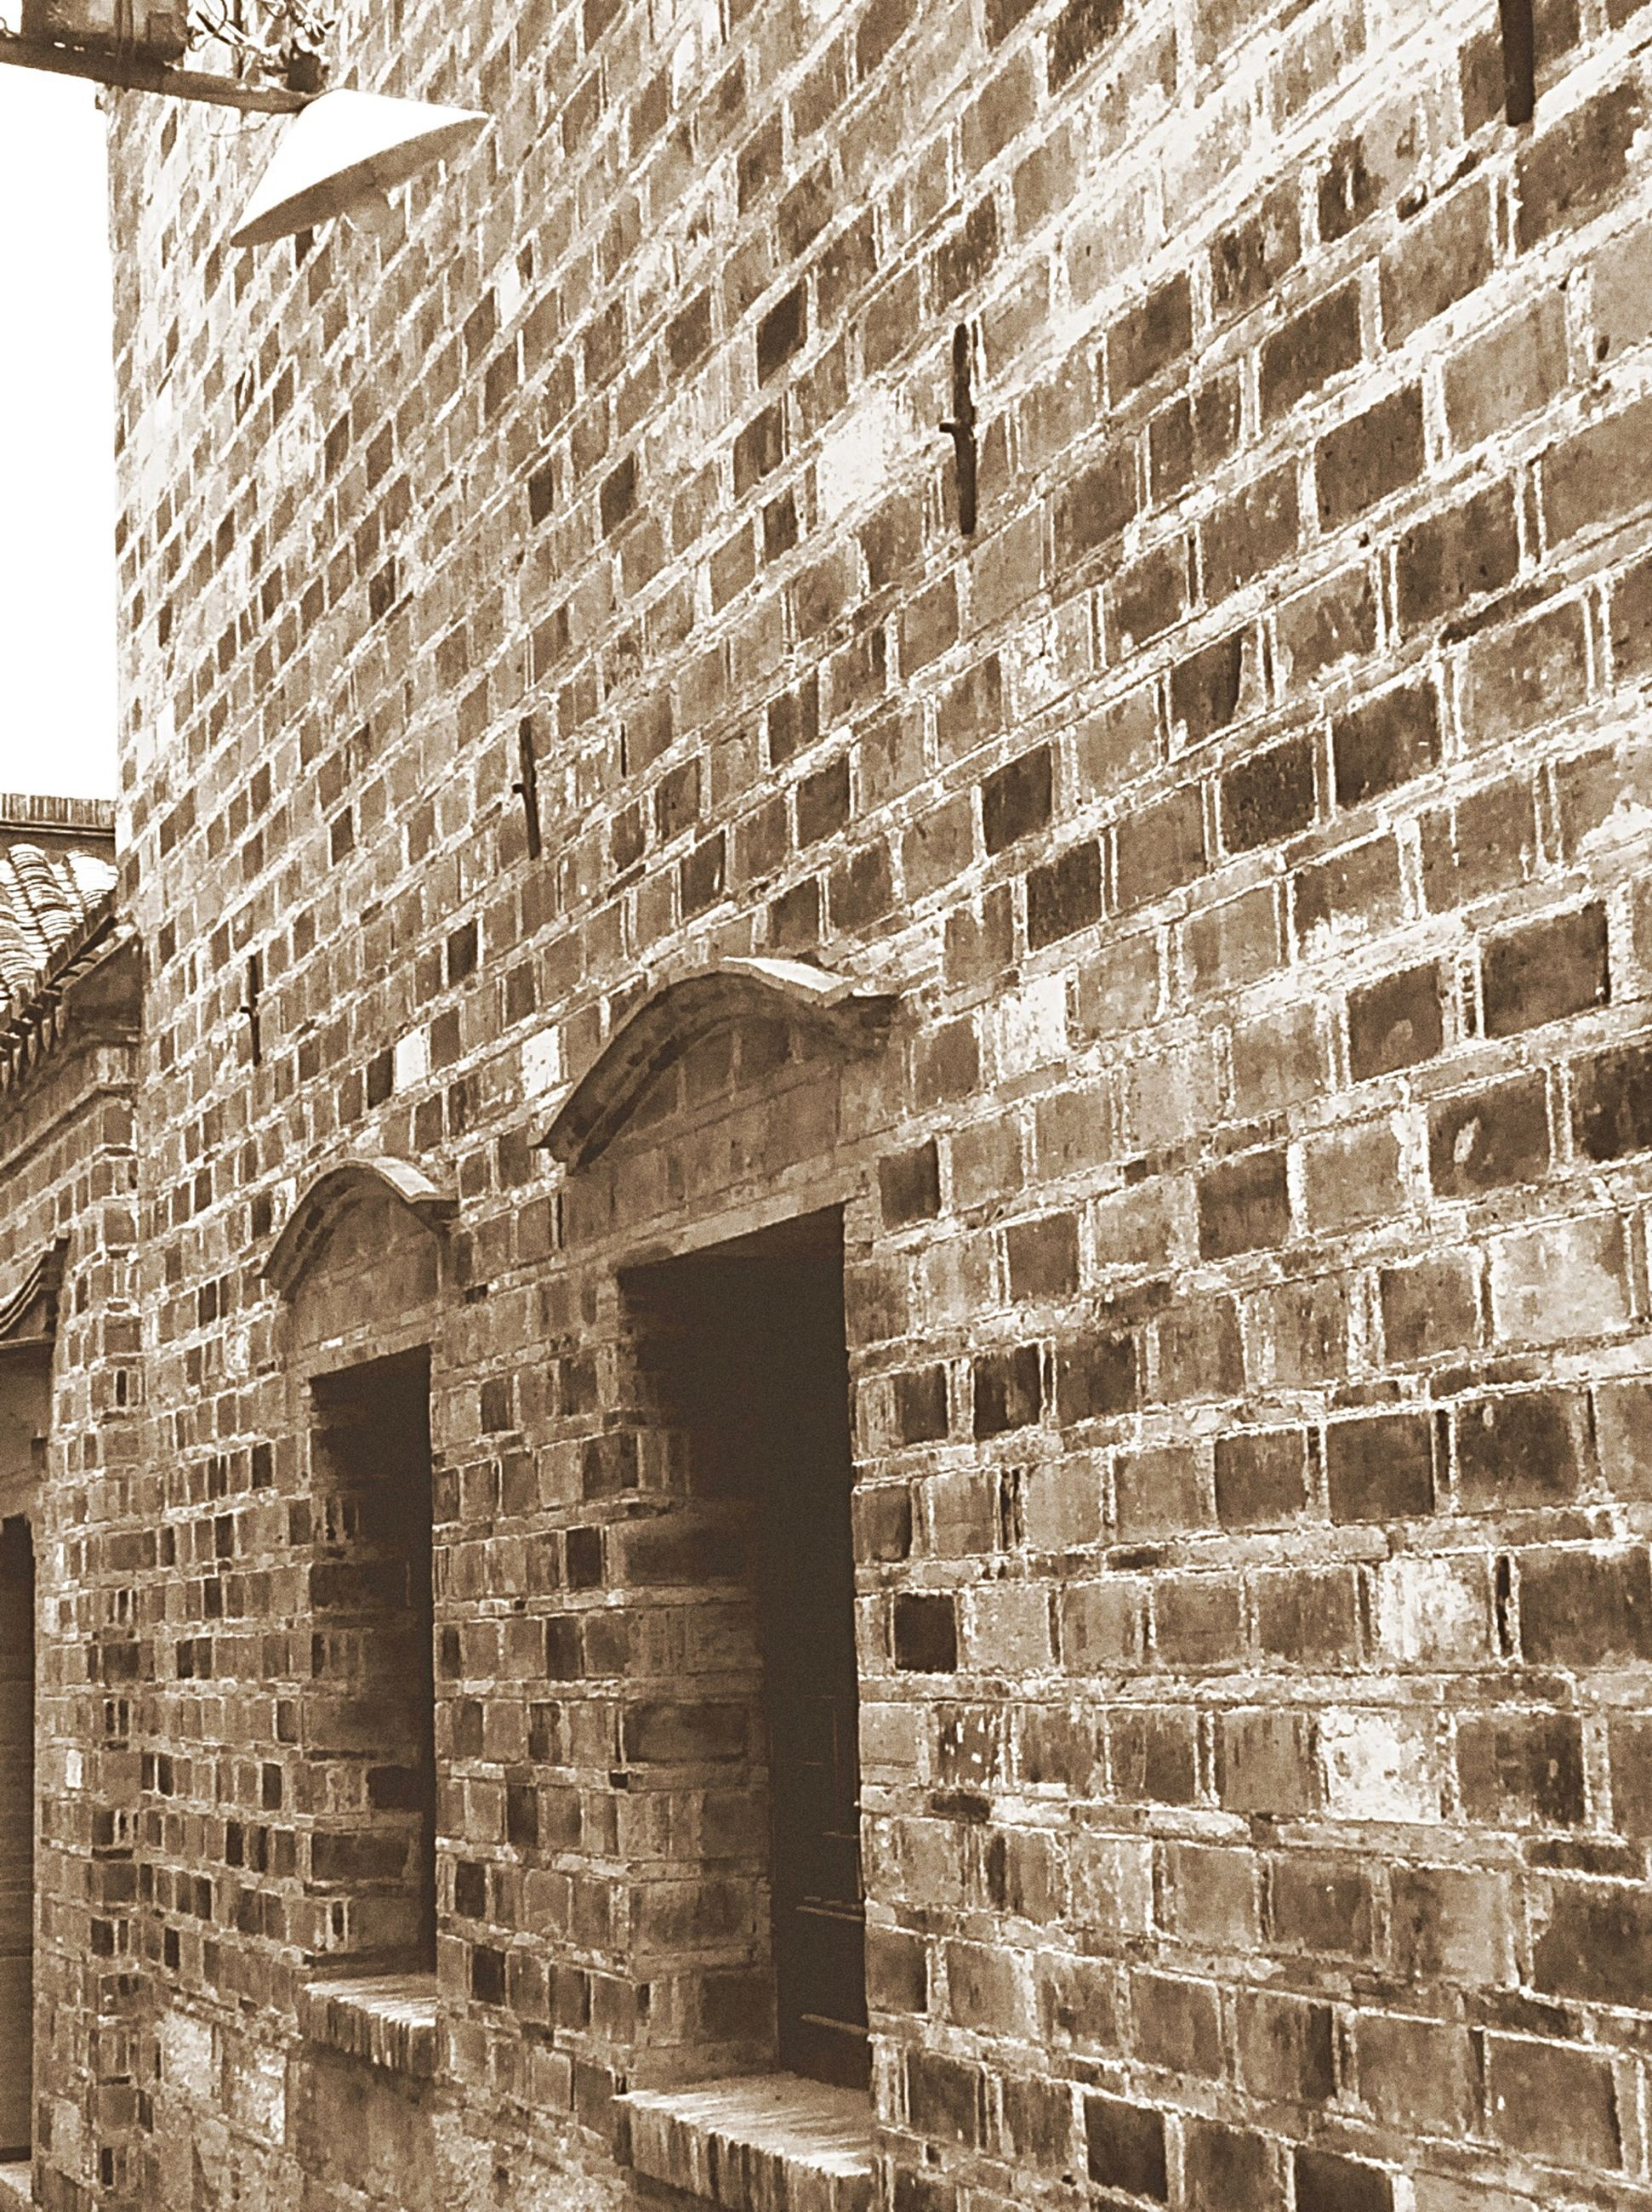 architecture, built structure, building exterior, brick wall, wall - building feature, stone wall, old, wall, history, weathered, brick, low angle view, window, pattern, building, outdoors, text, day, textured, damaged